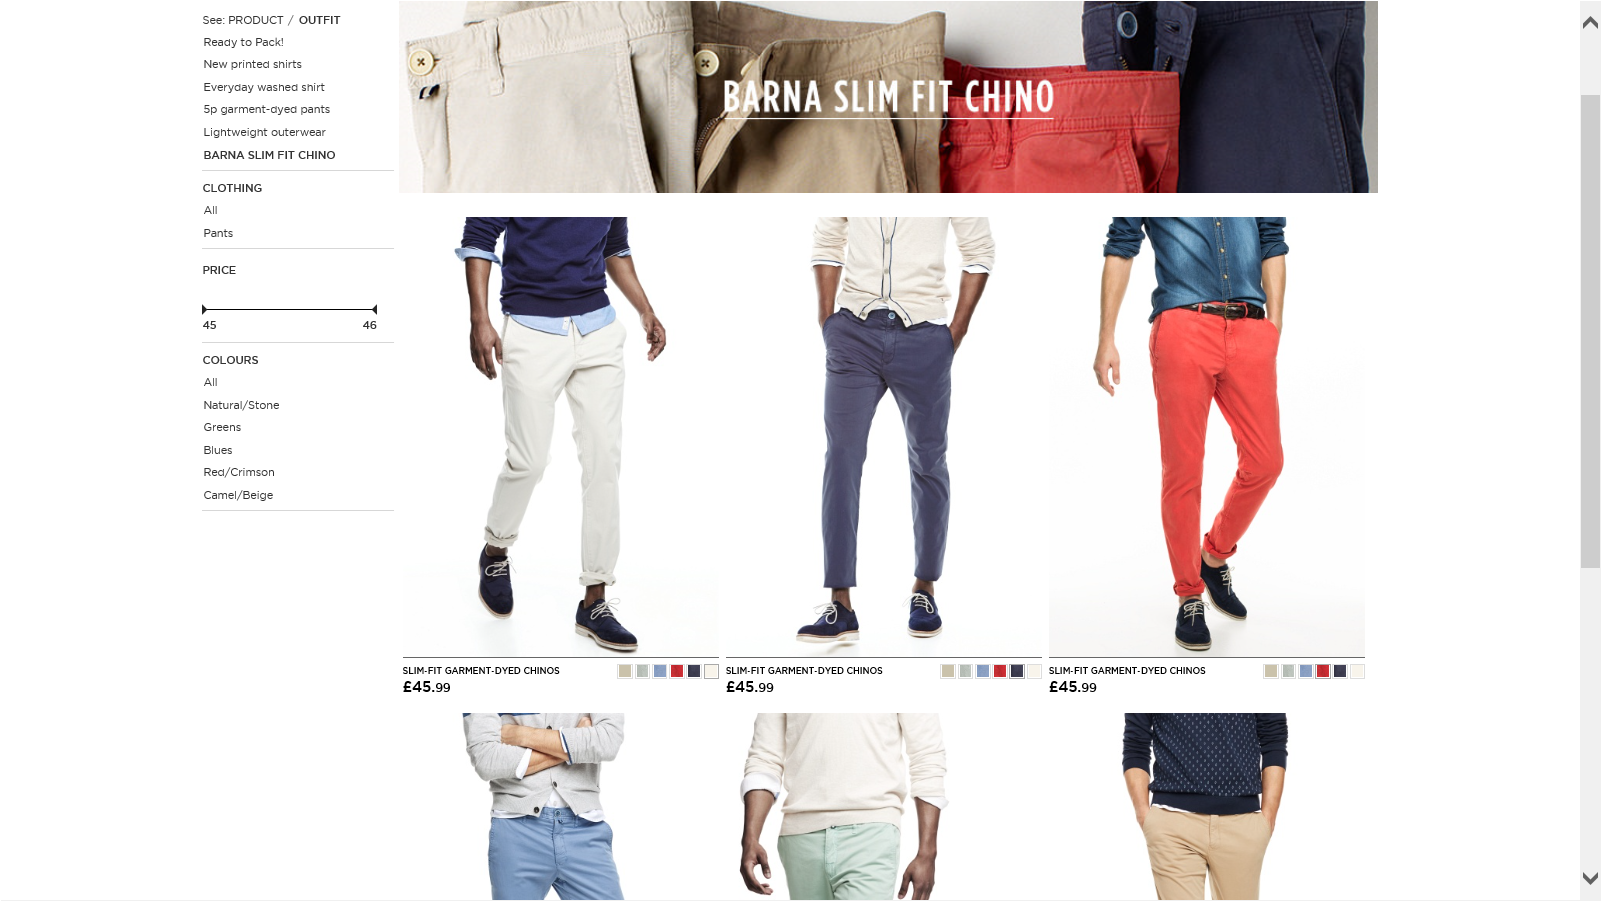 mango-man-barna-slim-fit-chino